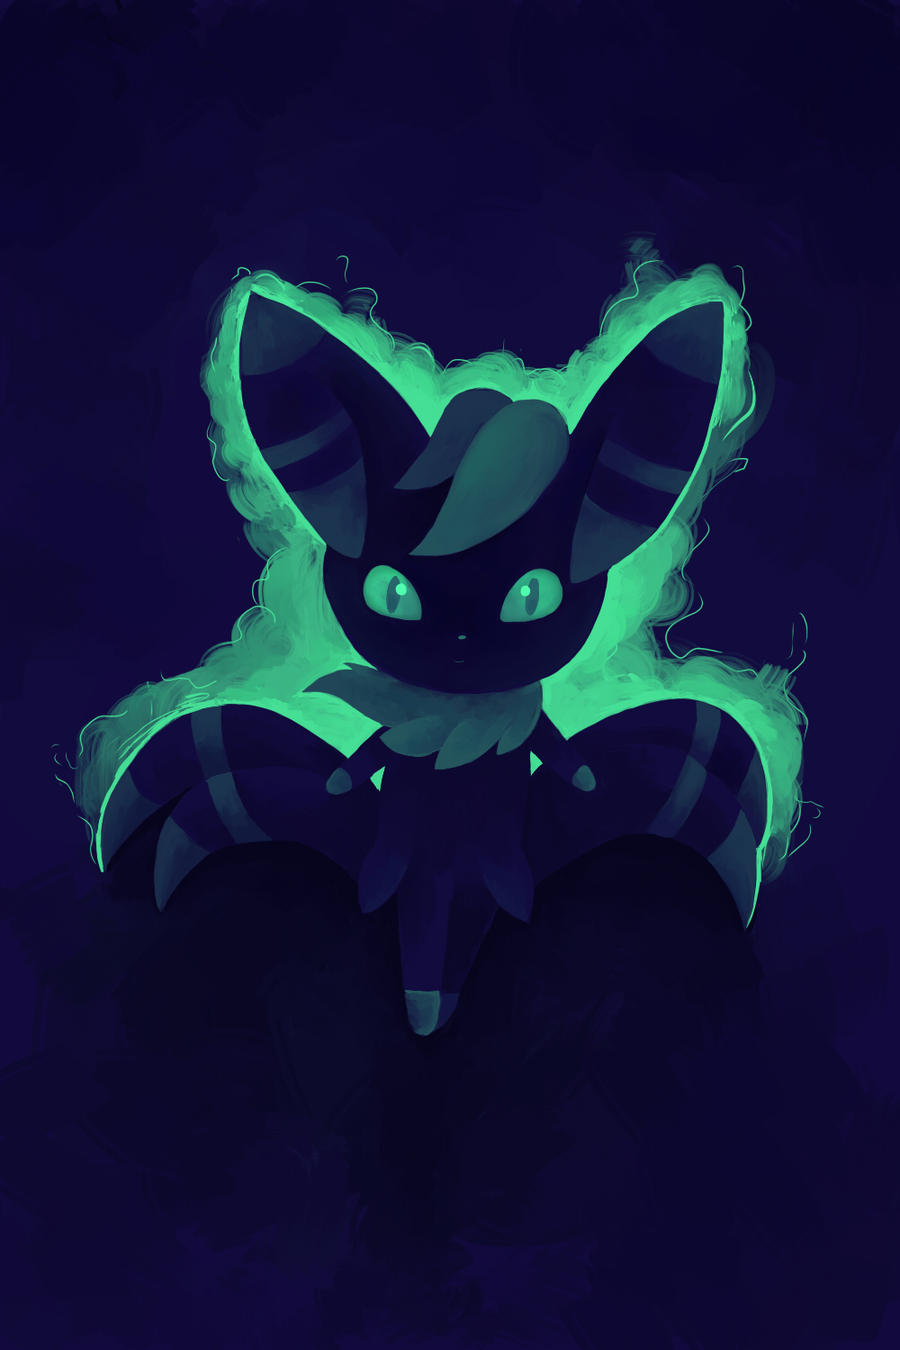 Pokemon images Meowstic Wallpaper wallpaper and background photos ...